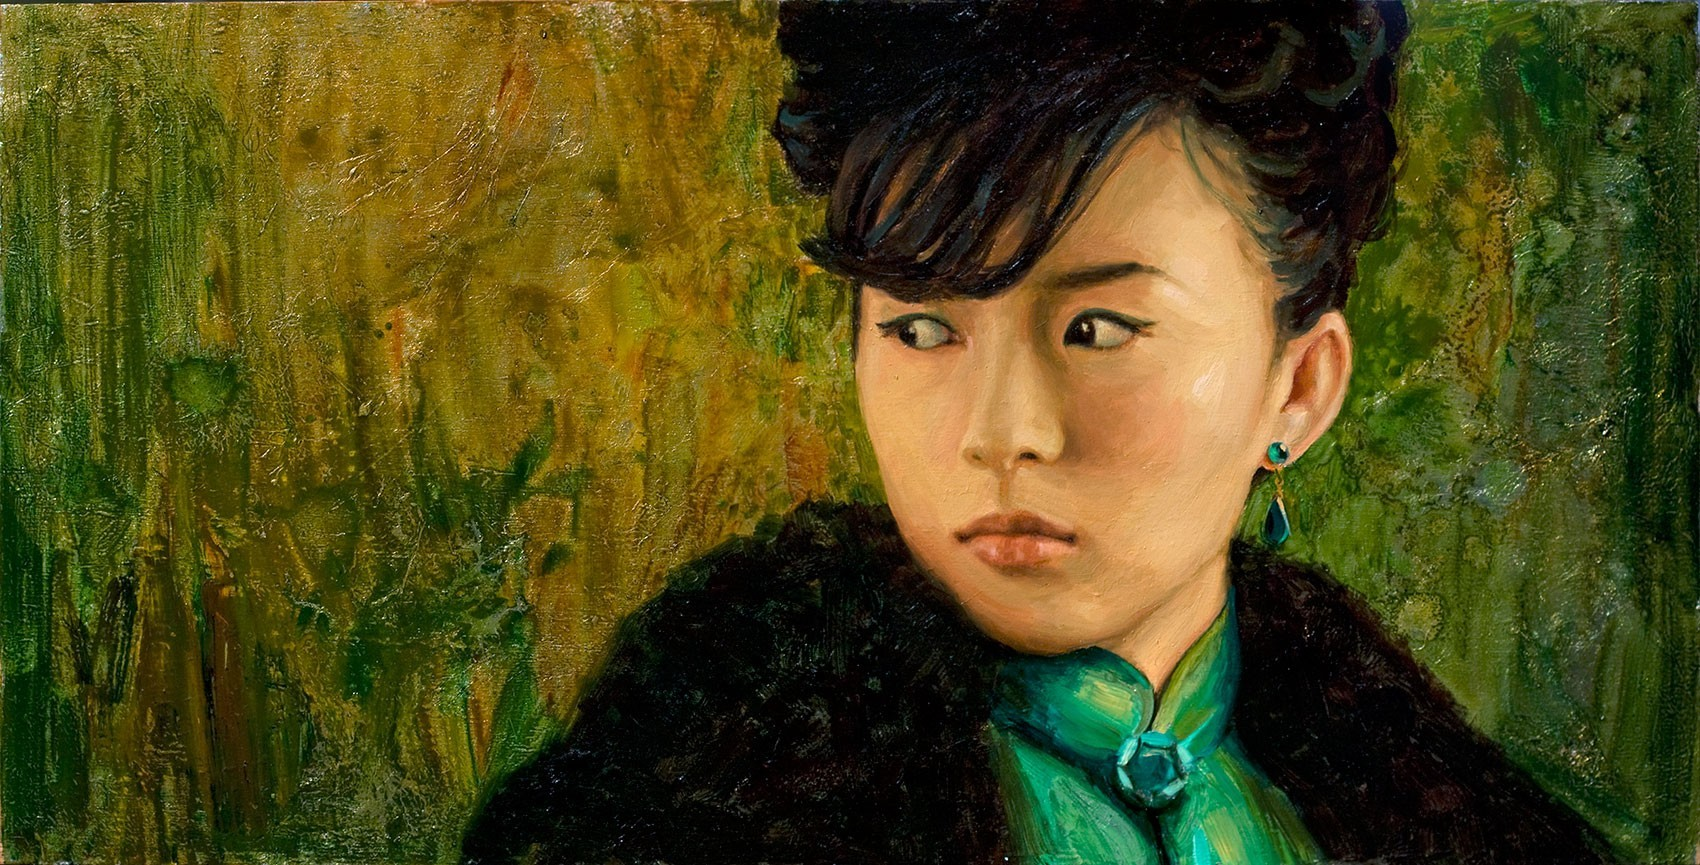 Portrait-in-Green-John-Haag-960x480-saved-for-web